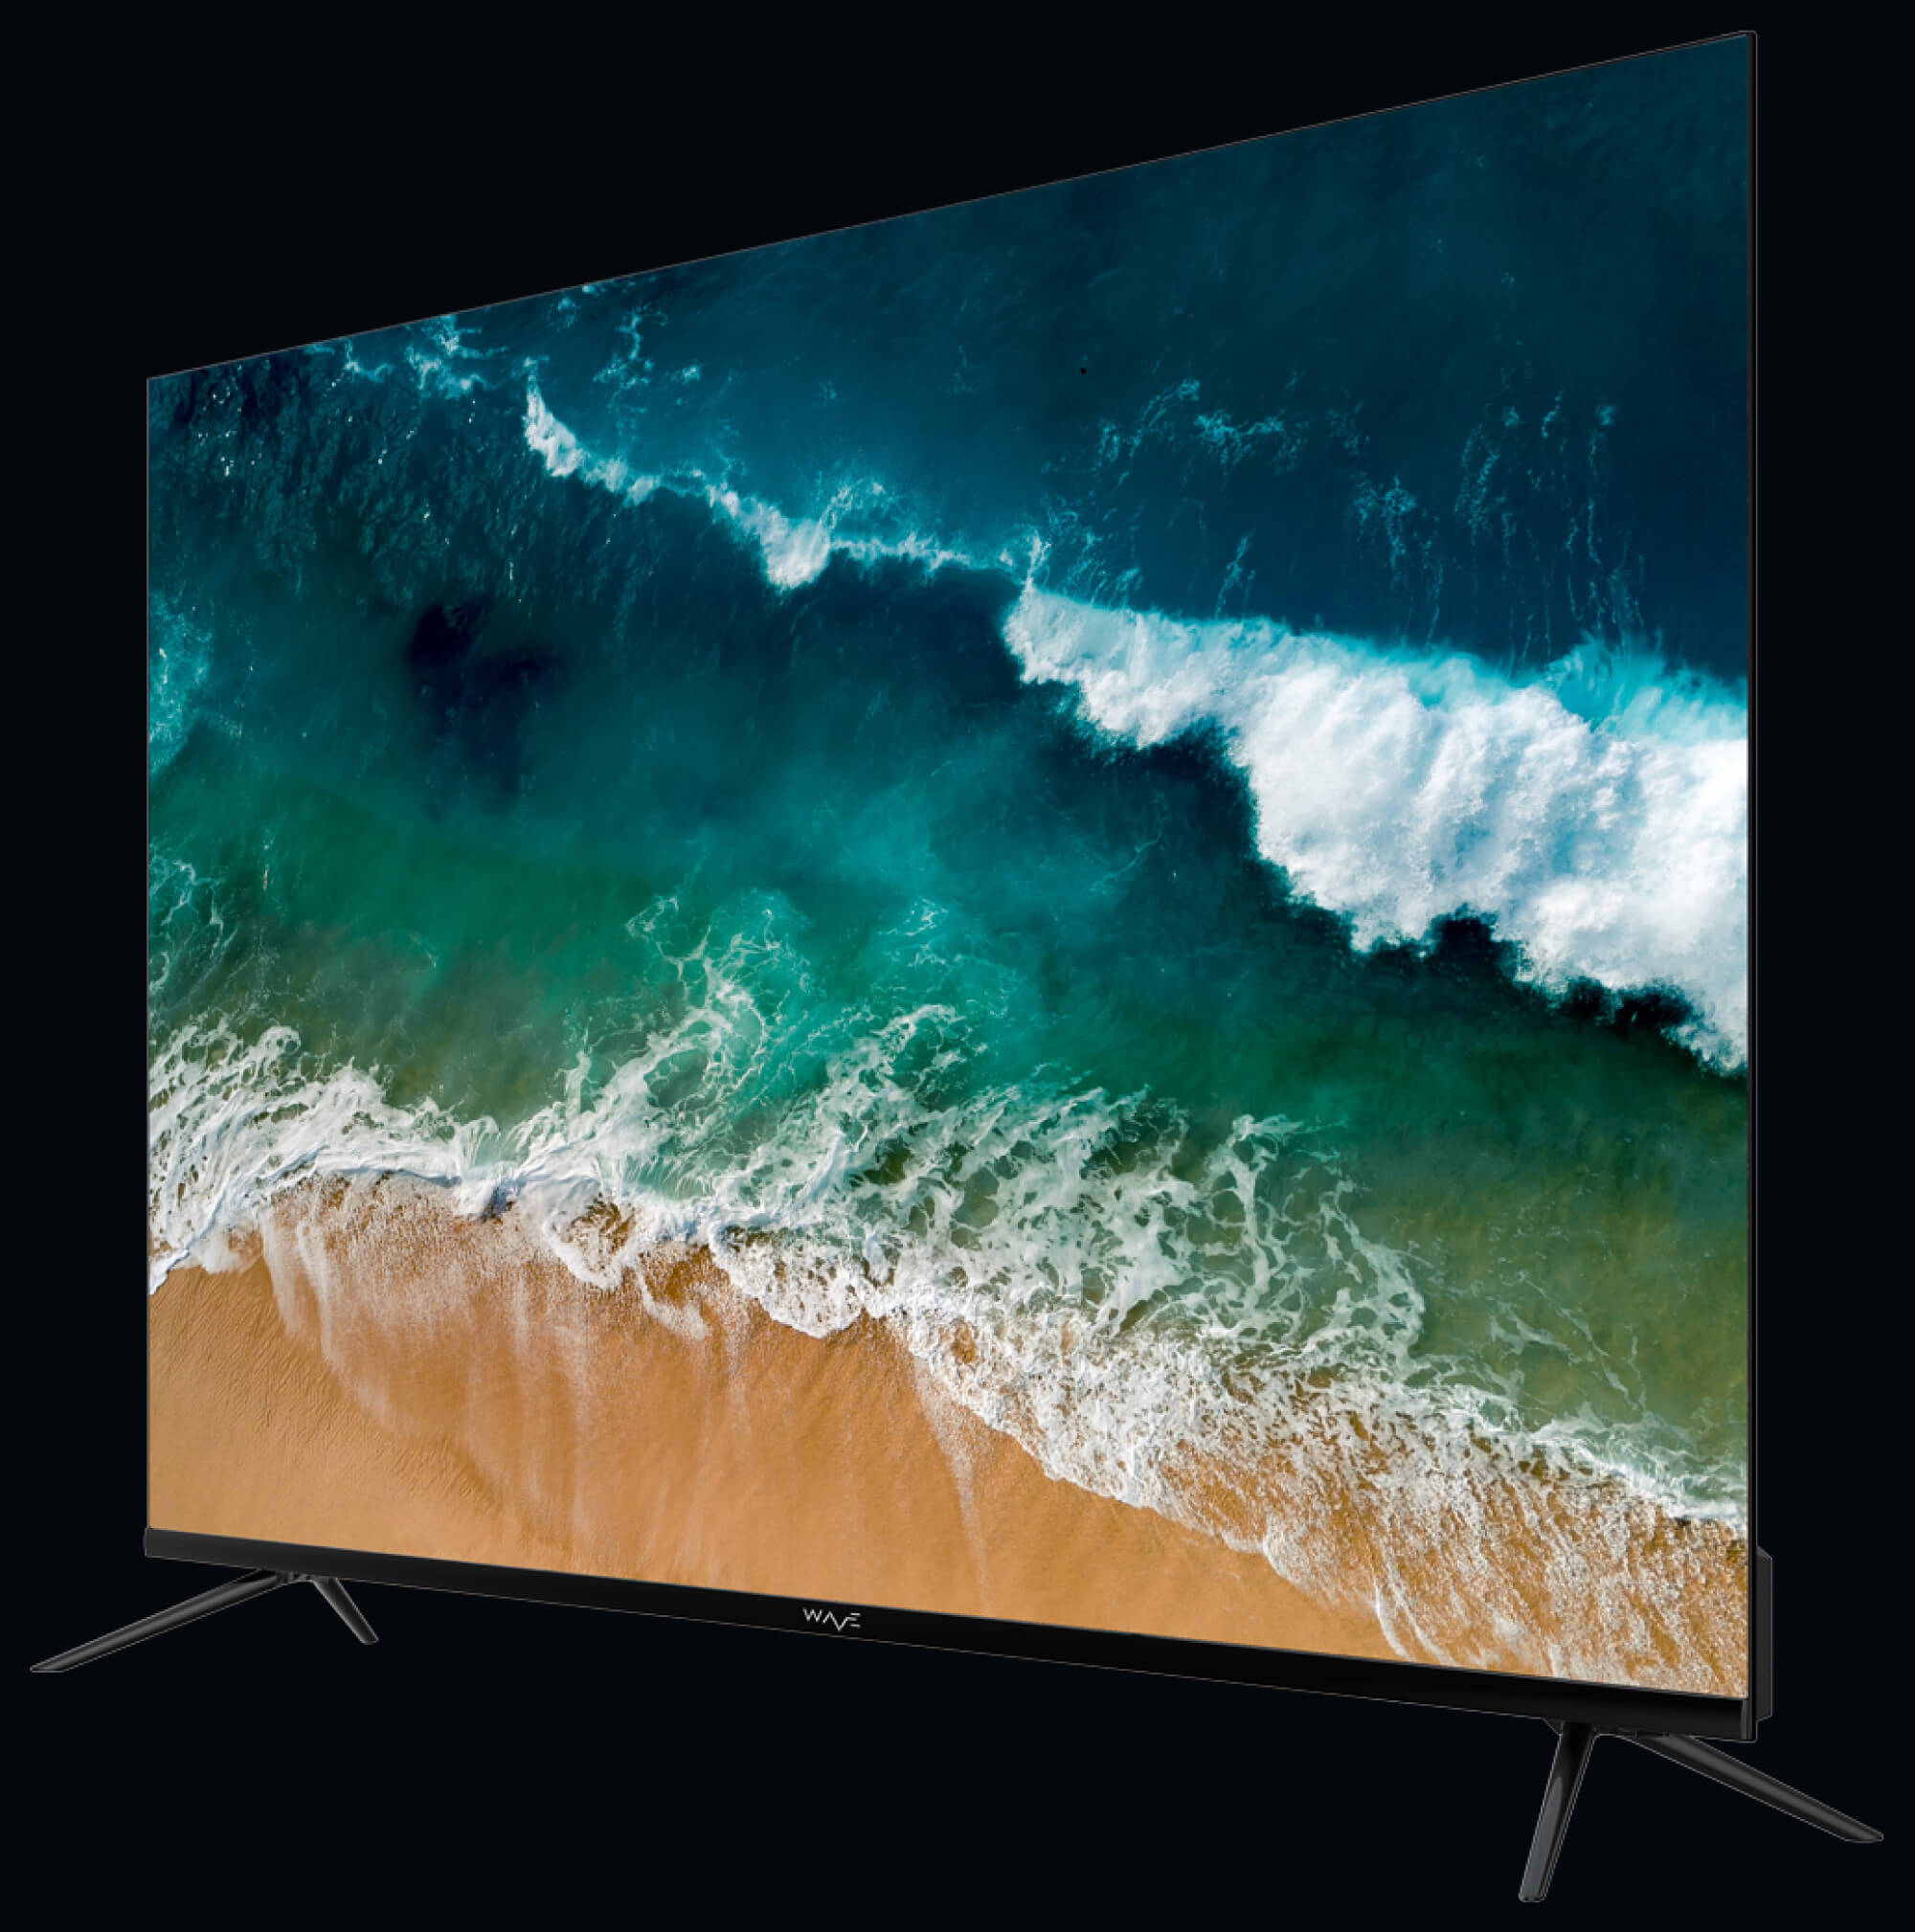 WAVE Electronics high specs TVs come with the best next-gen features